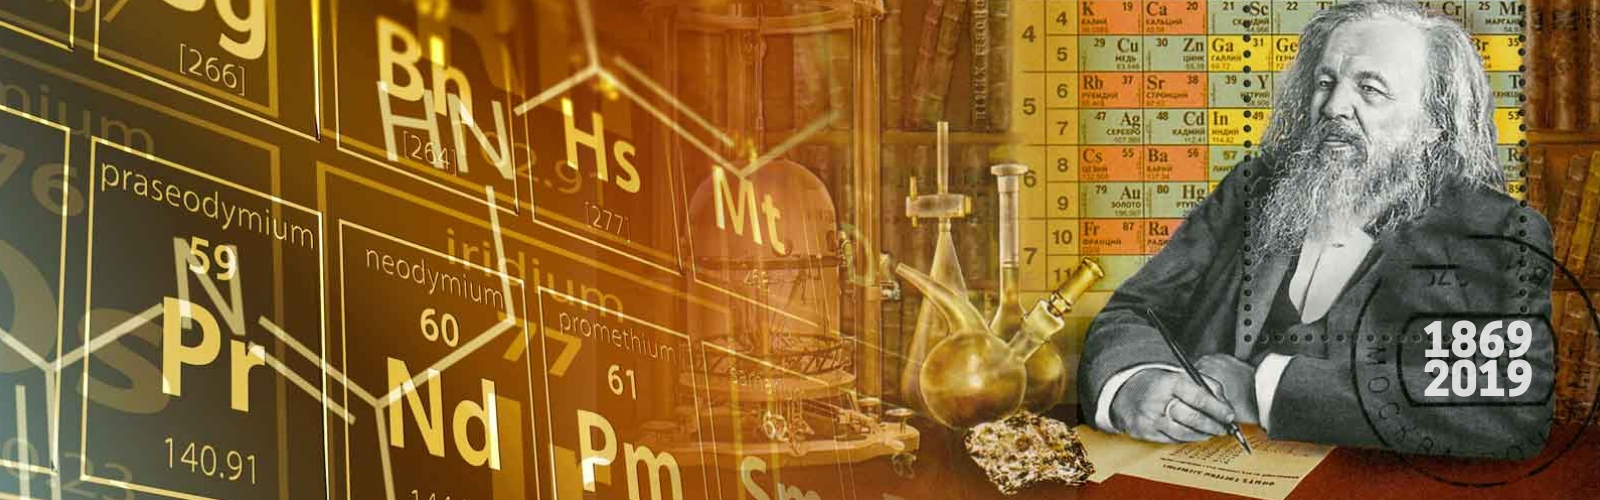 2019 - International Year of the Periodic Table of Chemical Elements